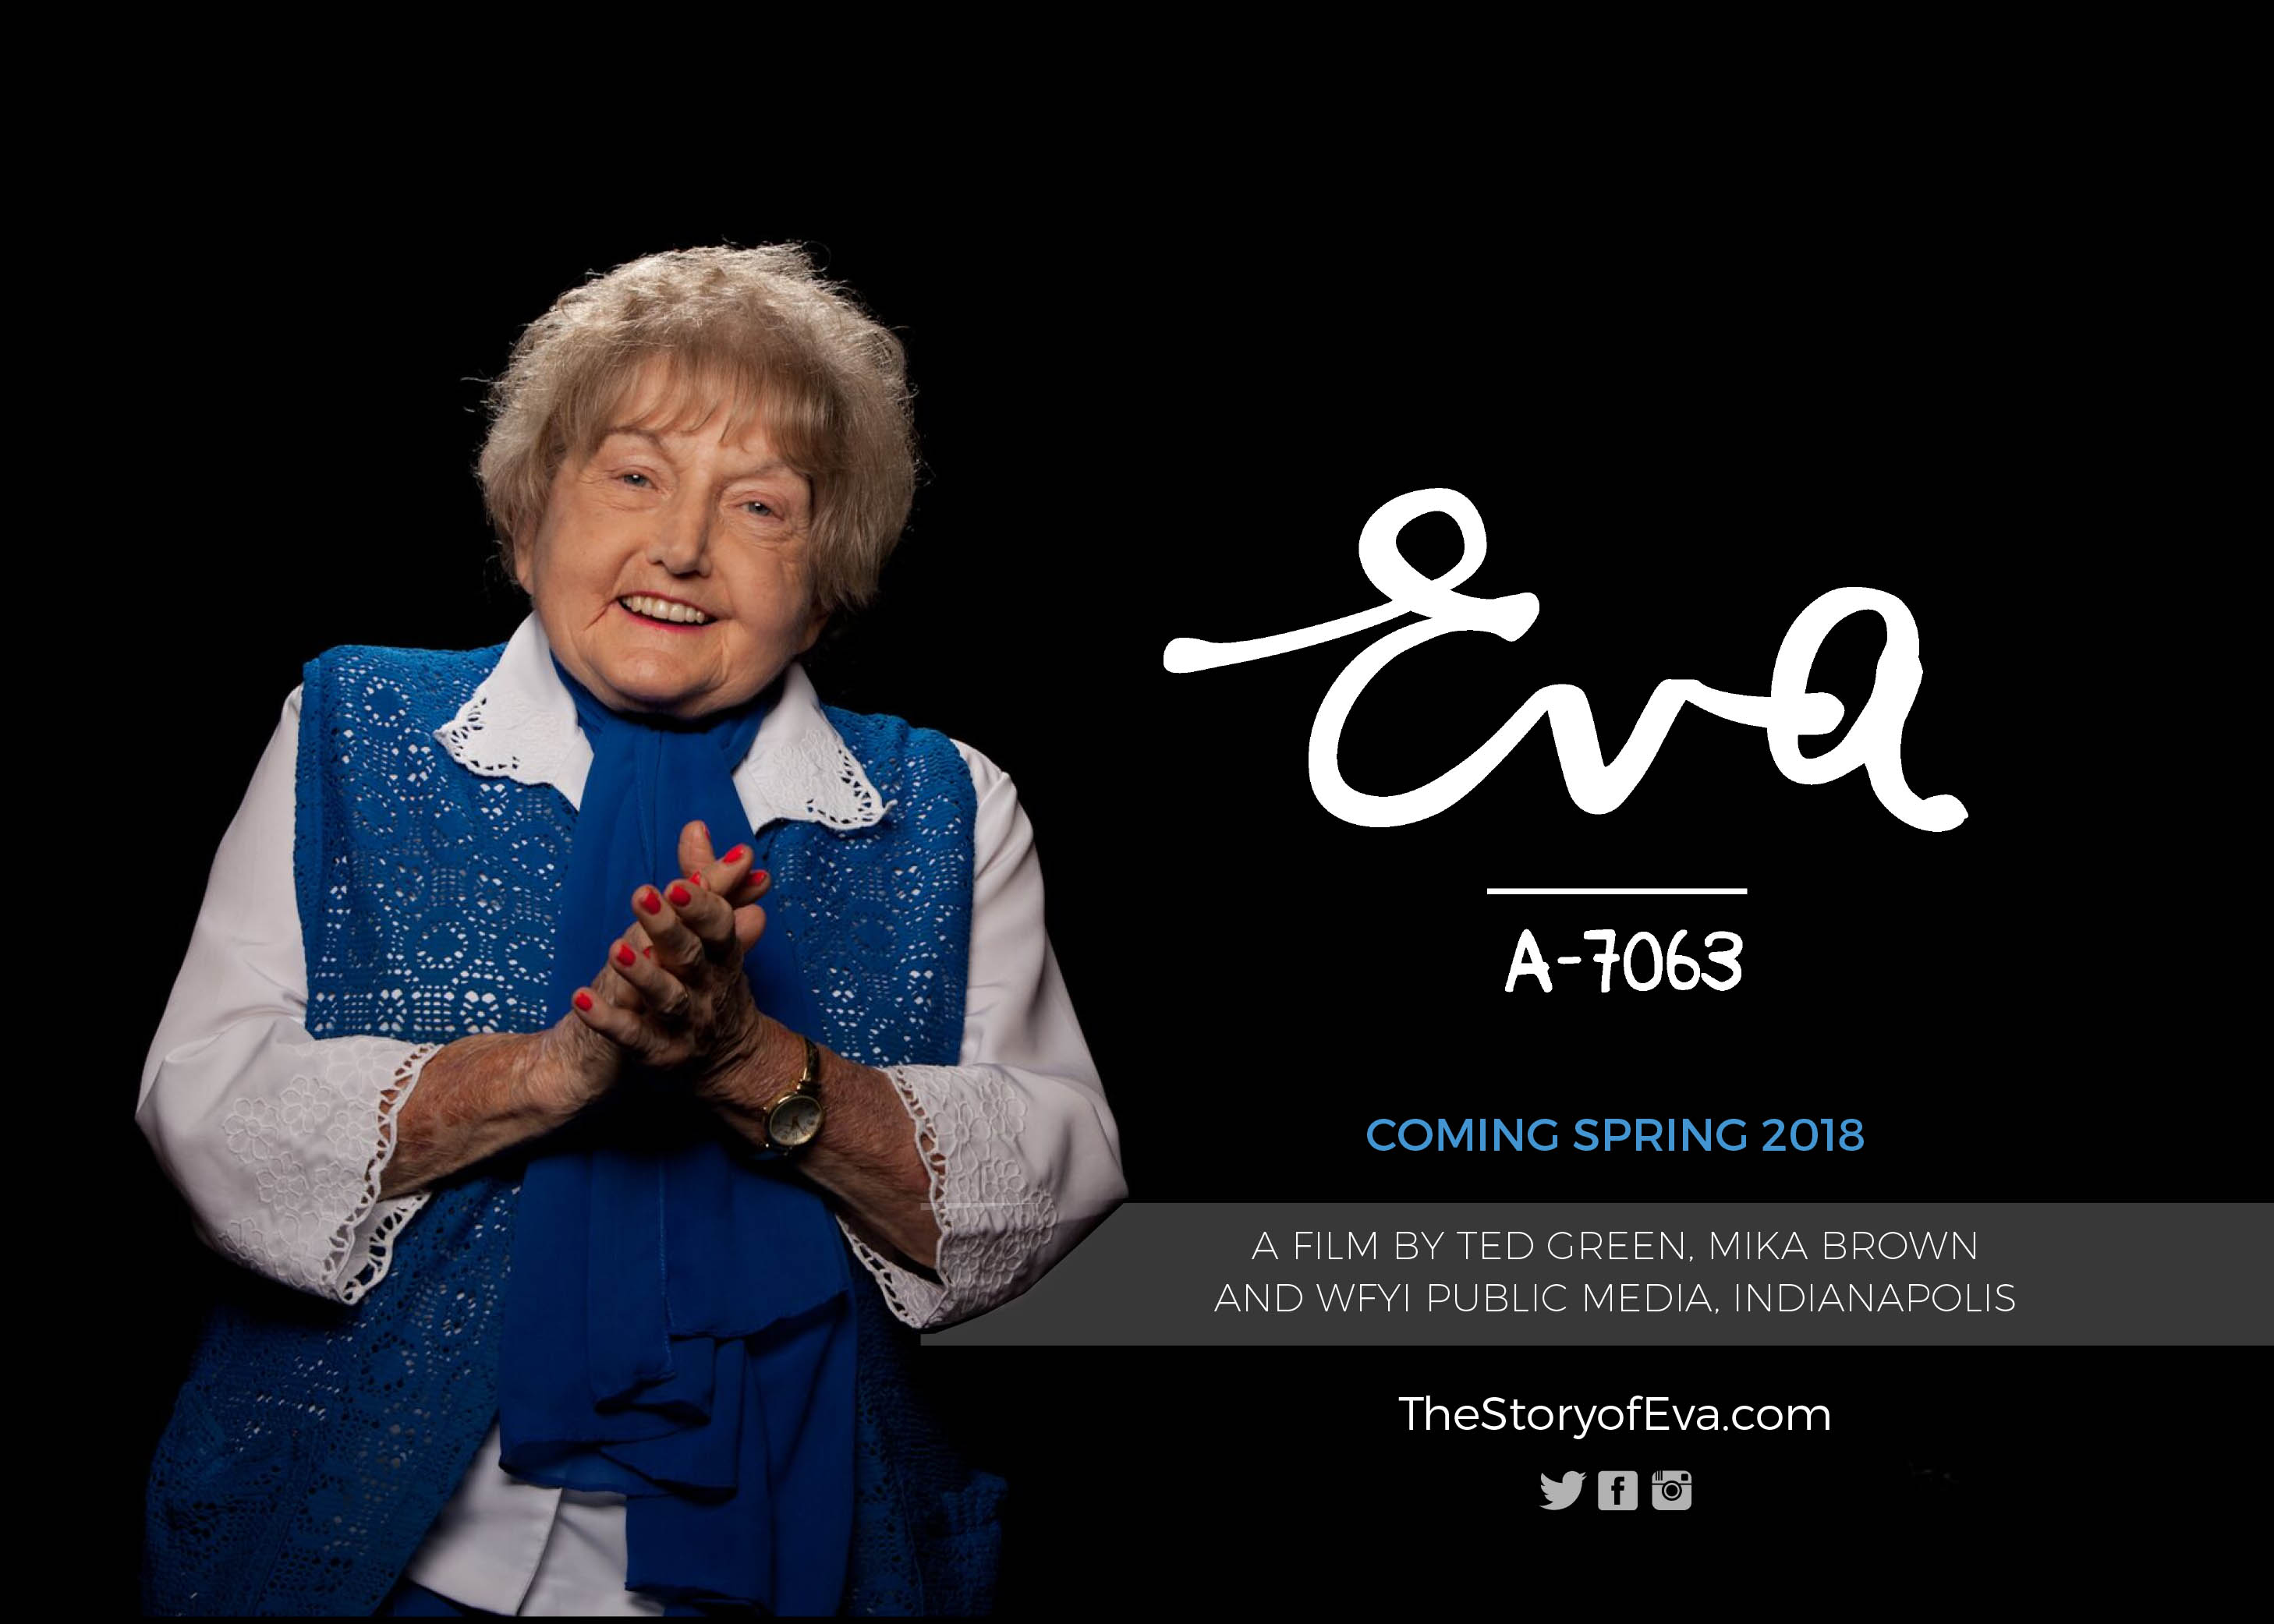 Eva Documentary coming in April 2018